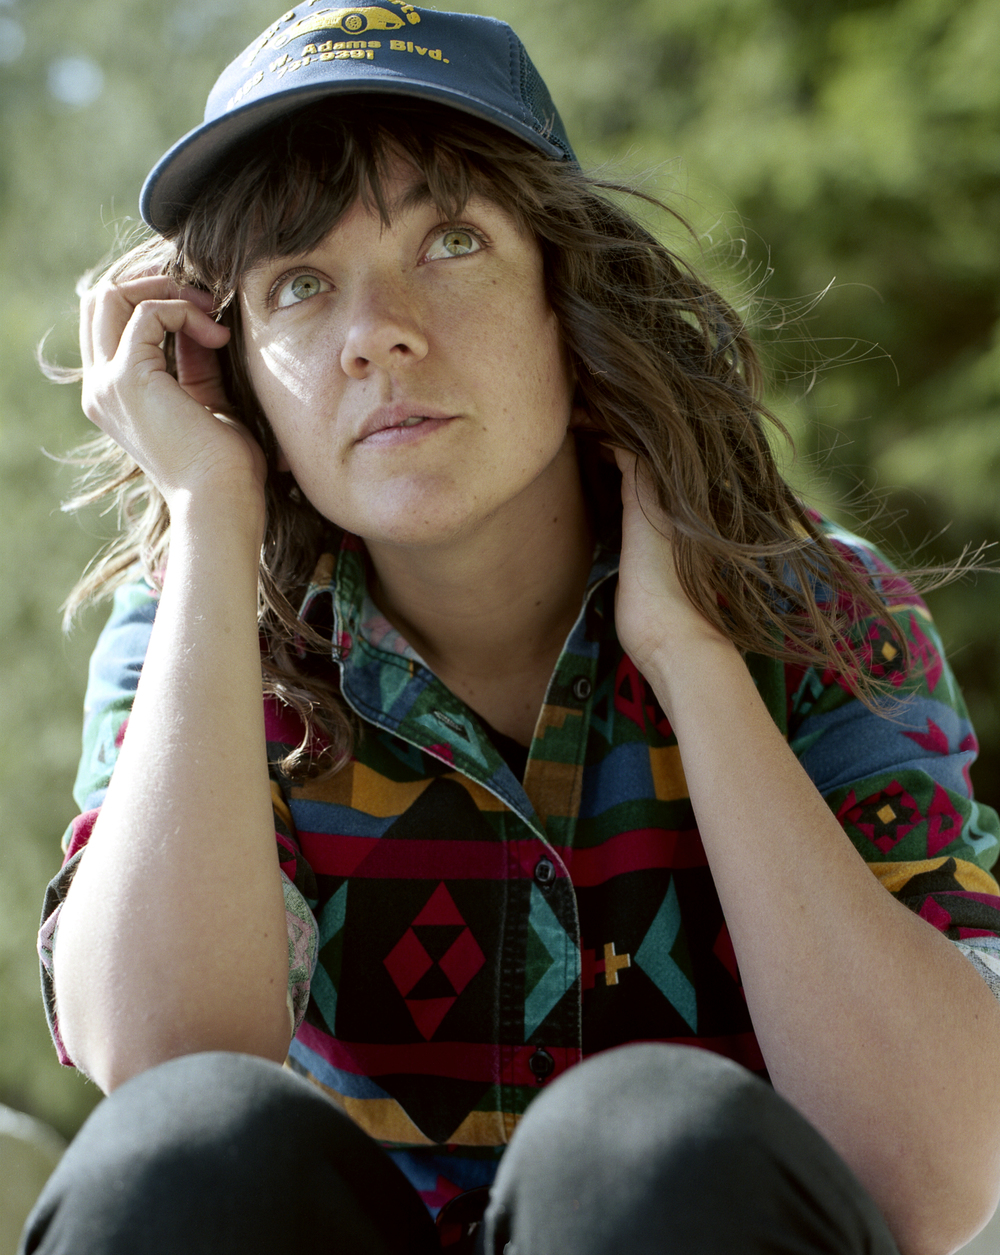 courtney-barnett-010.jpg